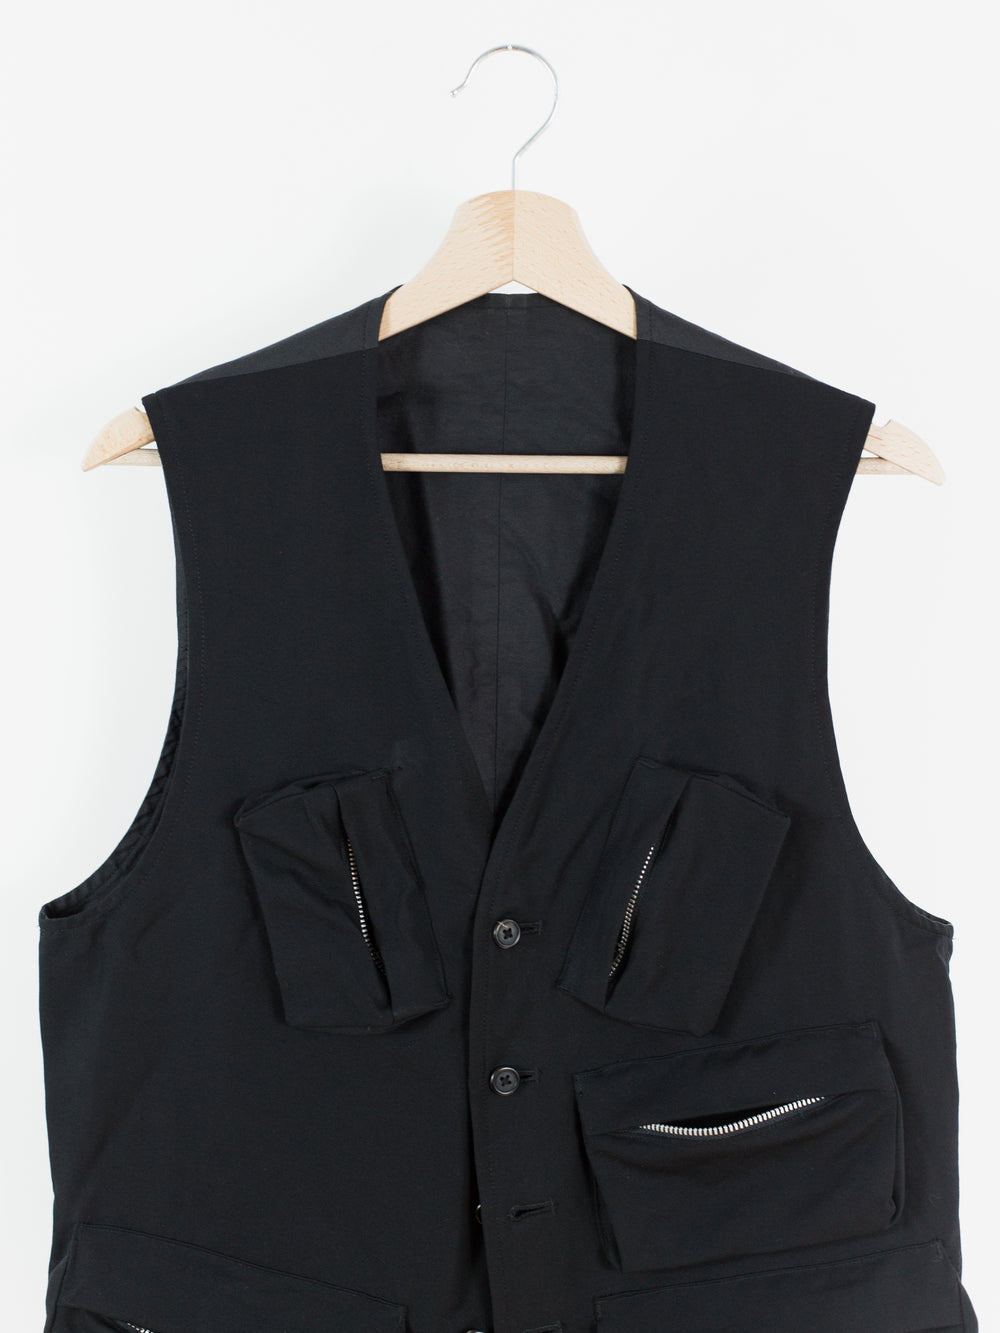 Yohji Yamamoto Y's For Men Multi-Pocket Utility Vest